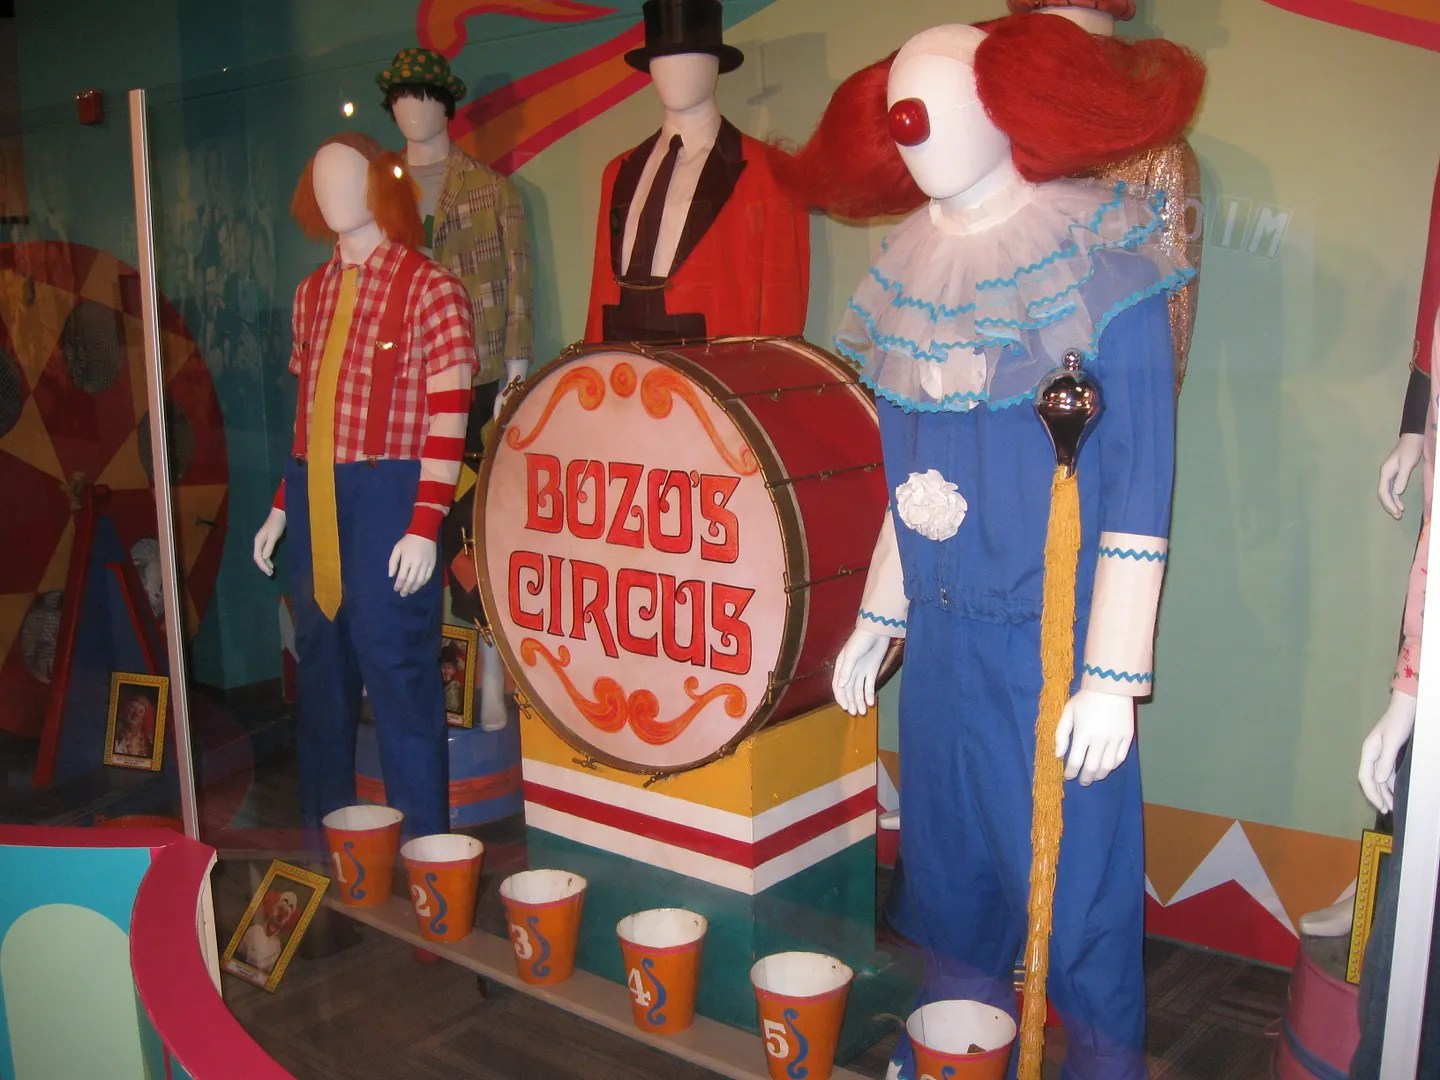 Bozo the Clown, Bozo's Circus